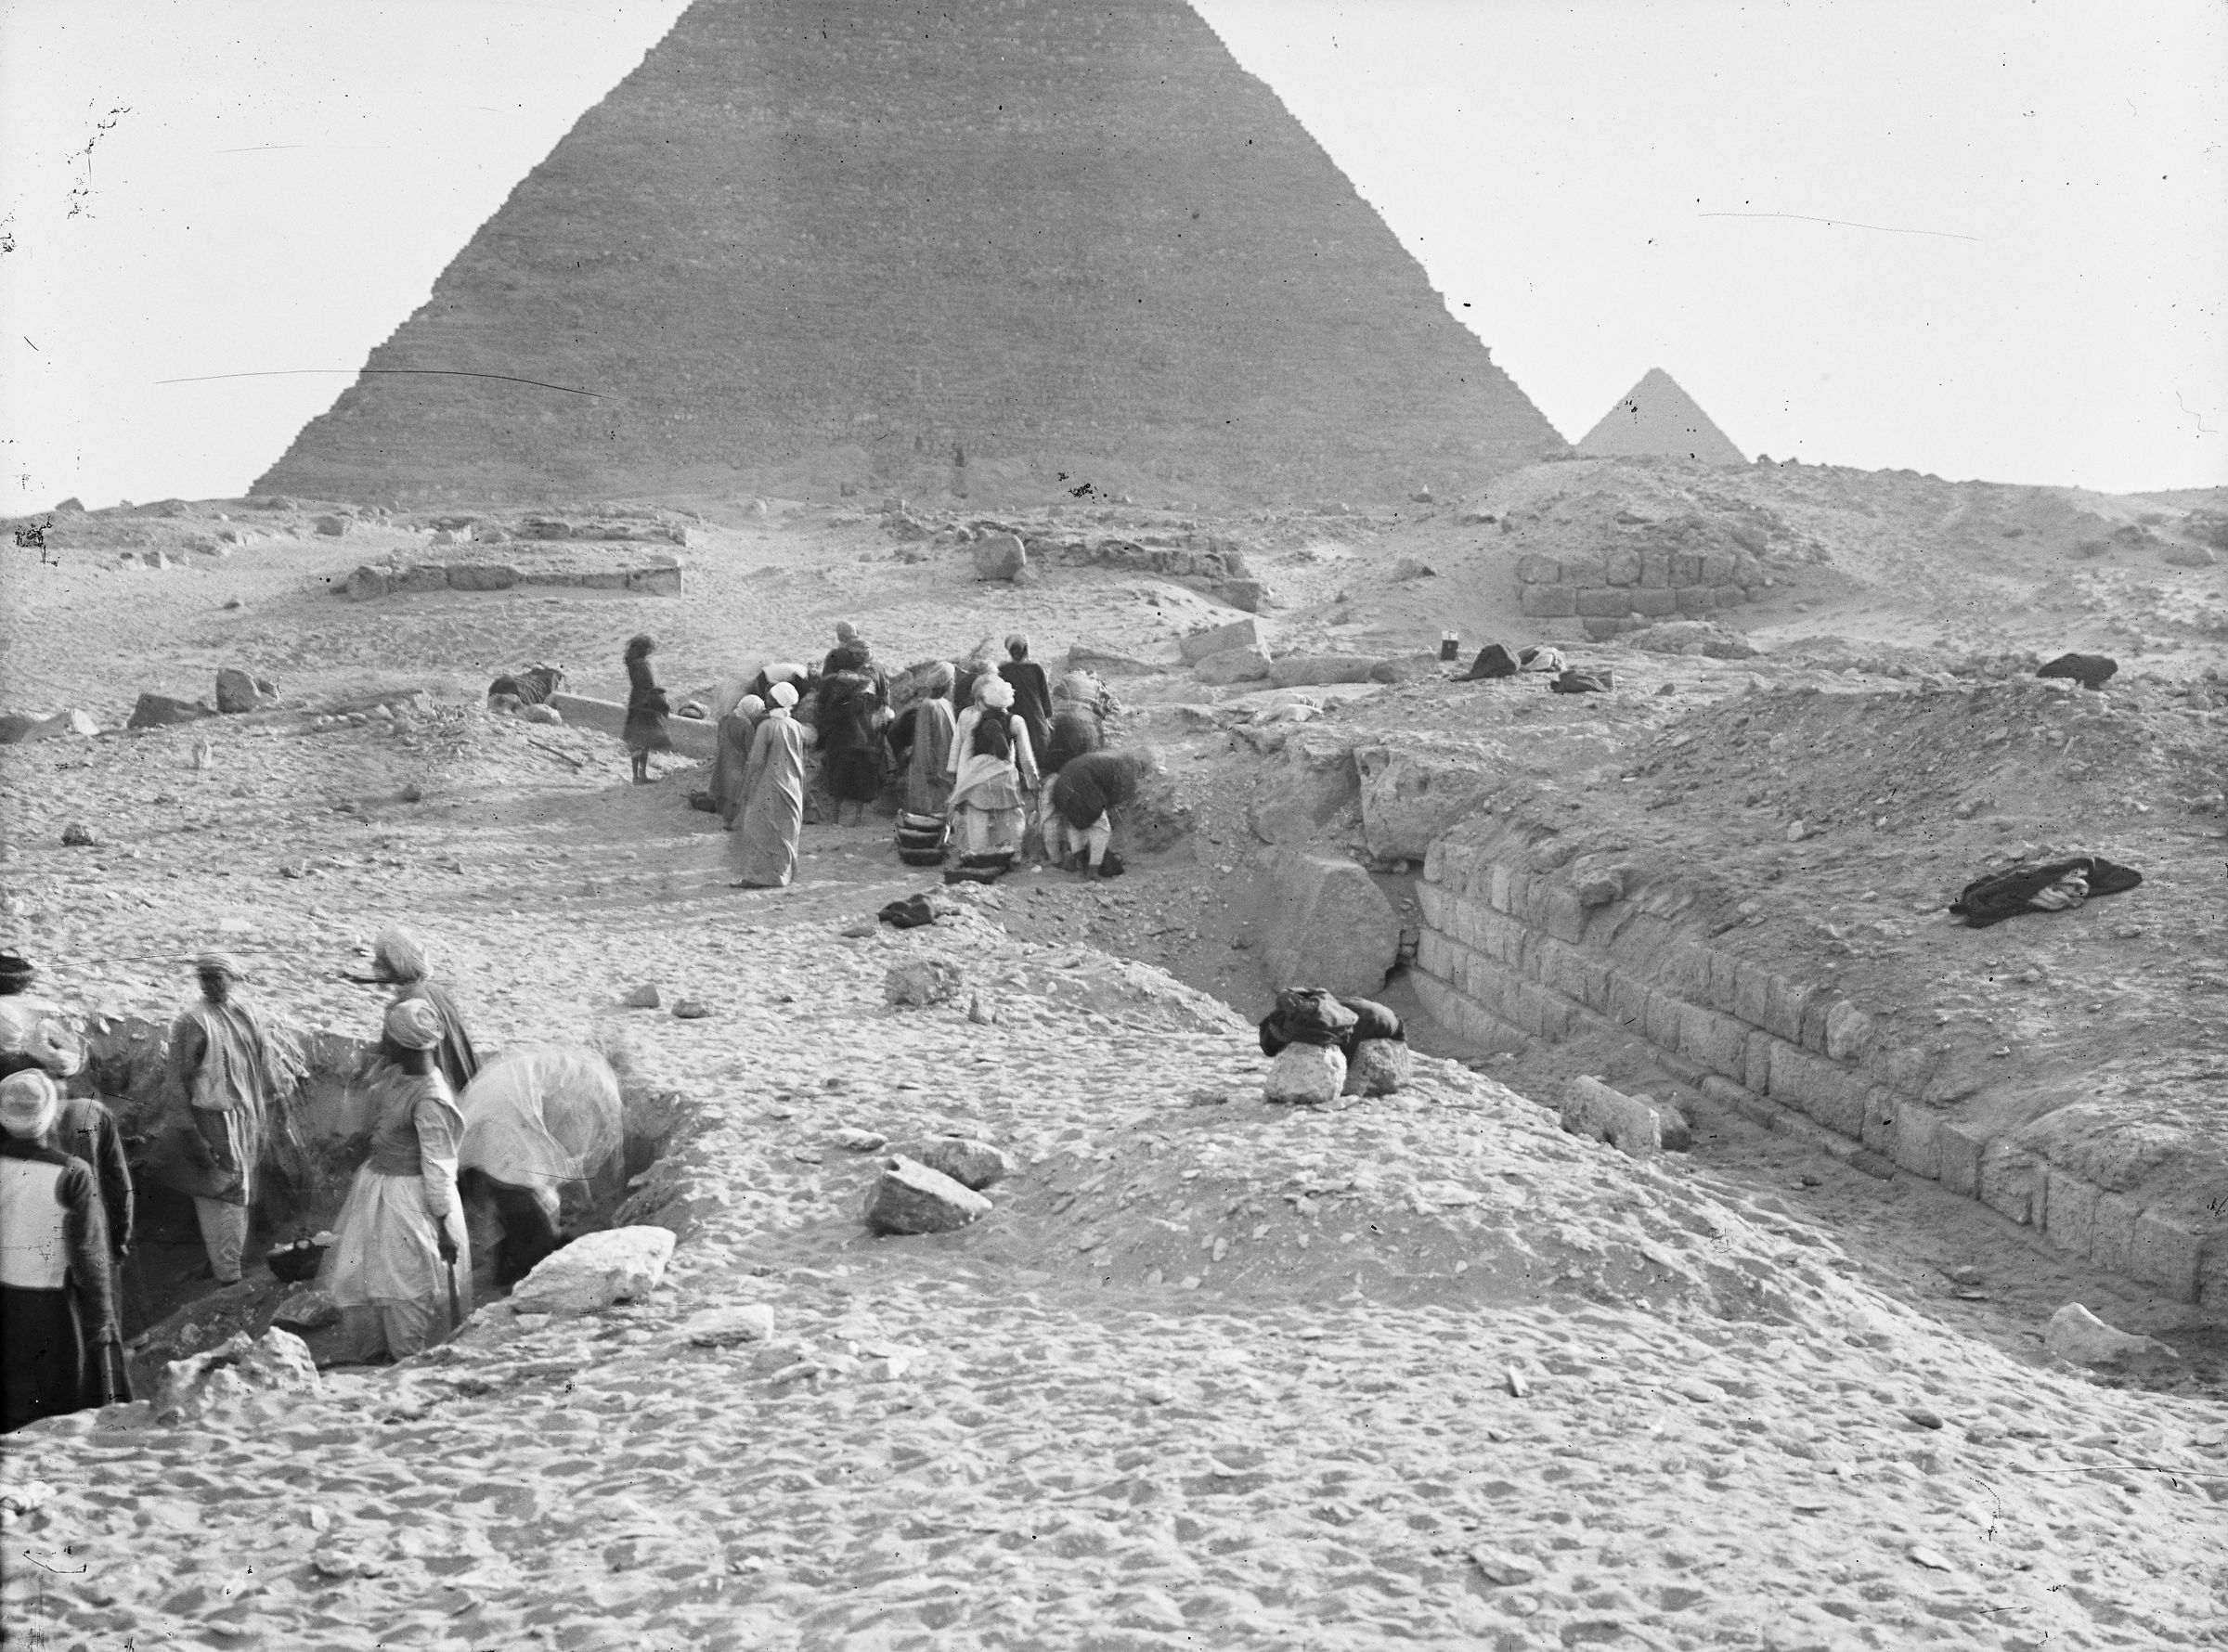 Western Cemetery: Site: Giza; View: G 2100, G 2120, G 2130, G 2100-I